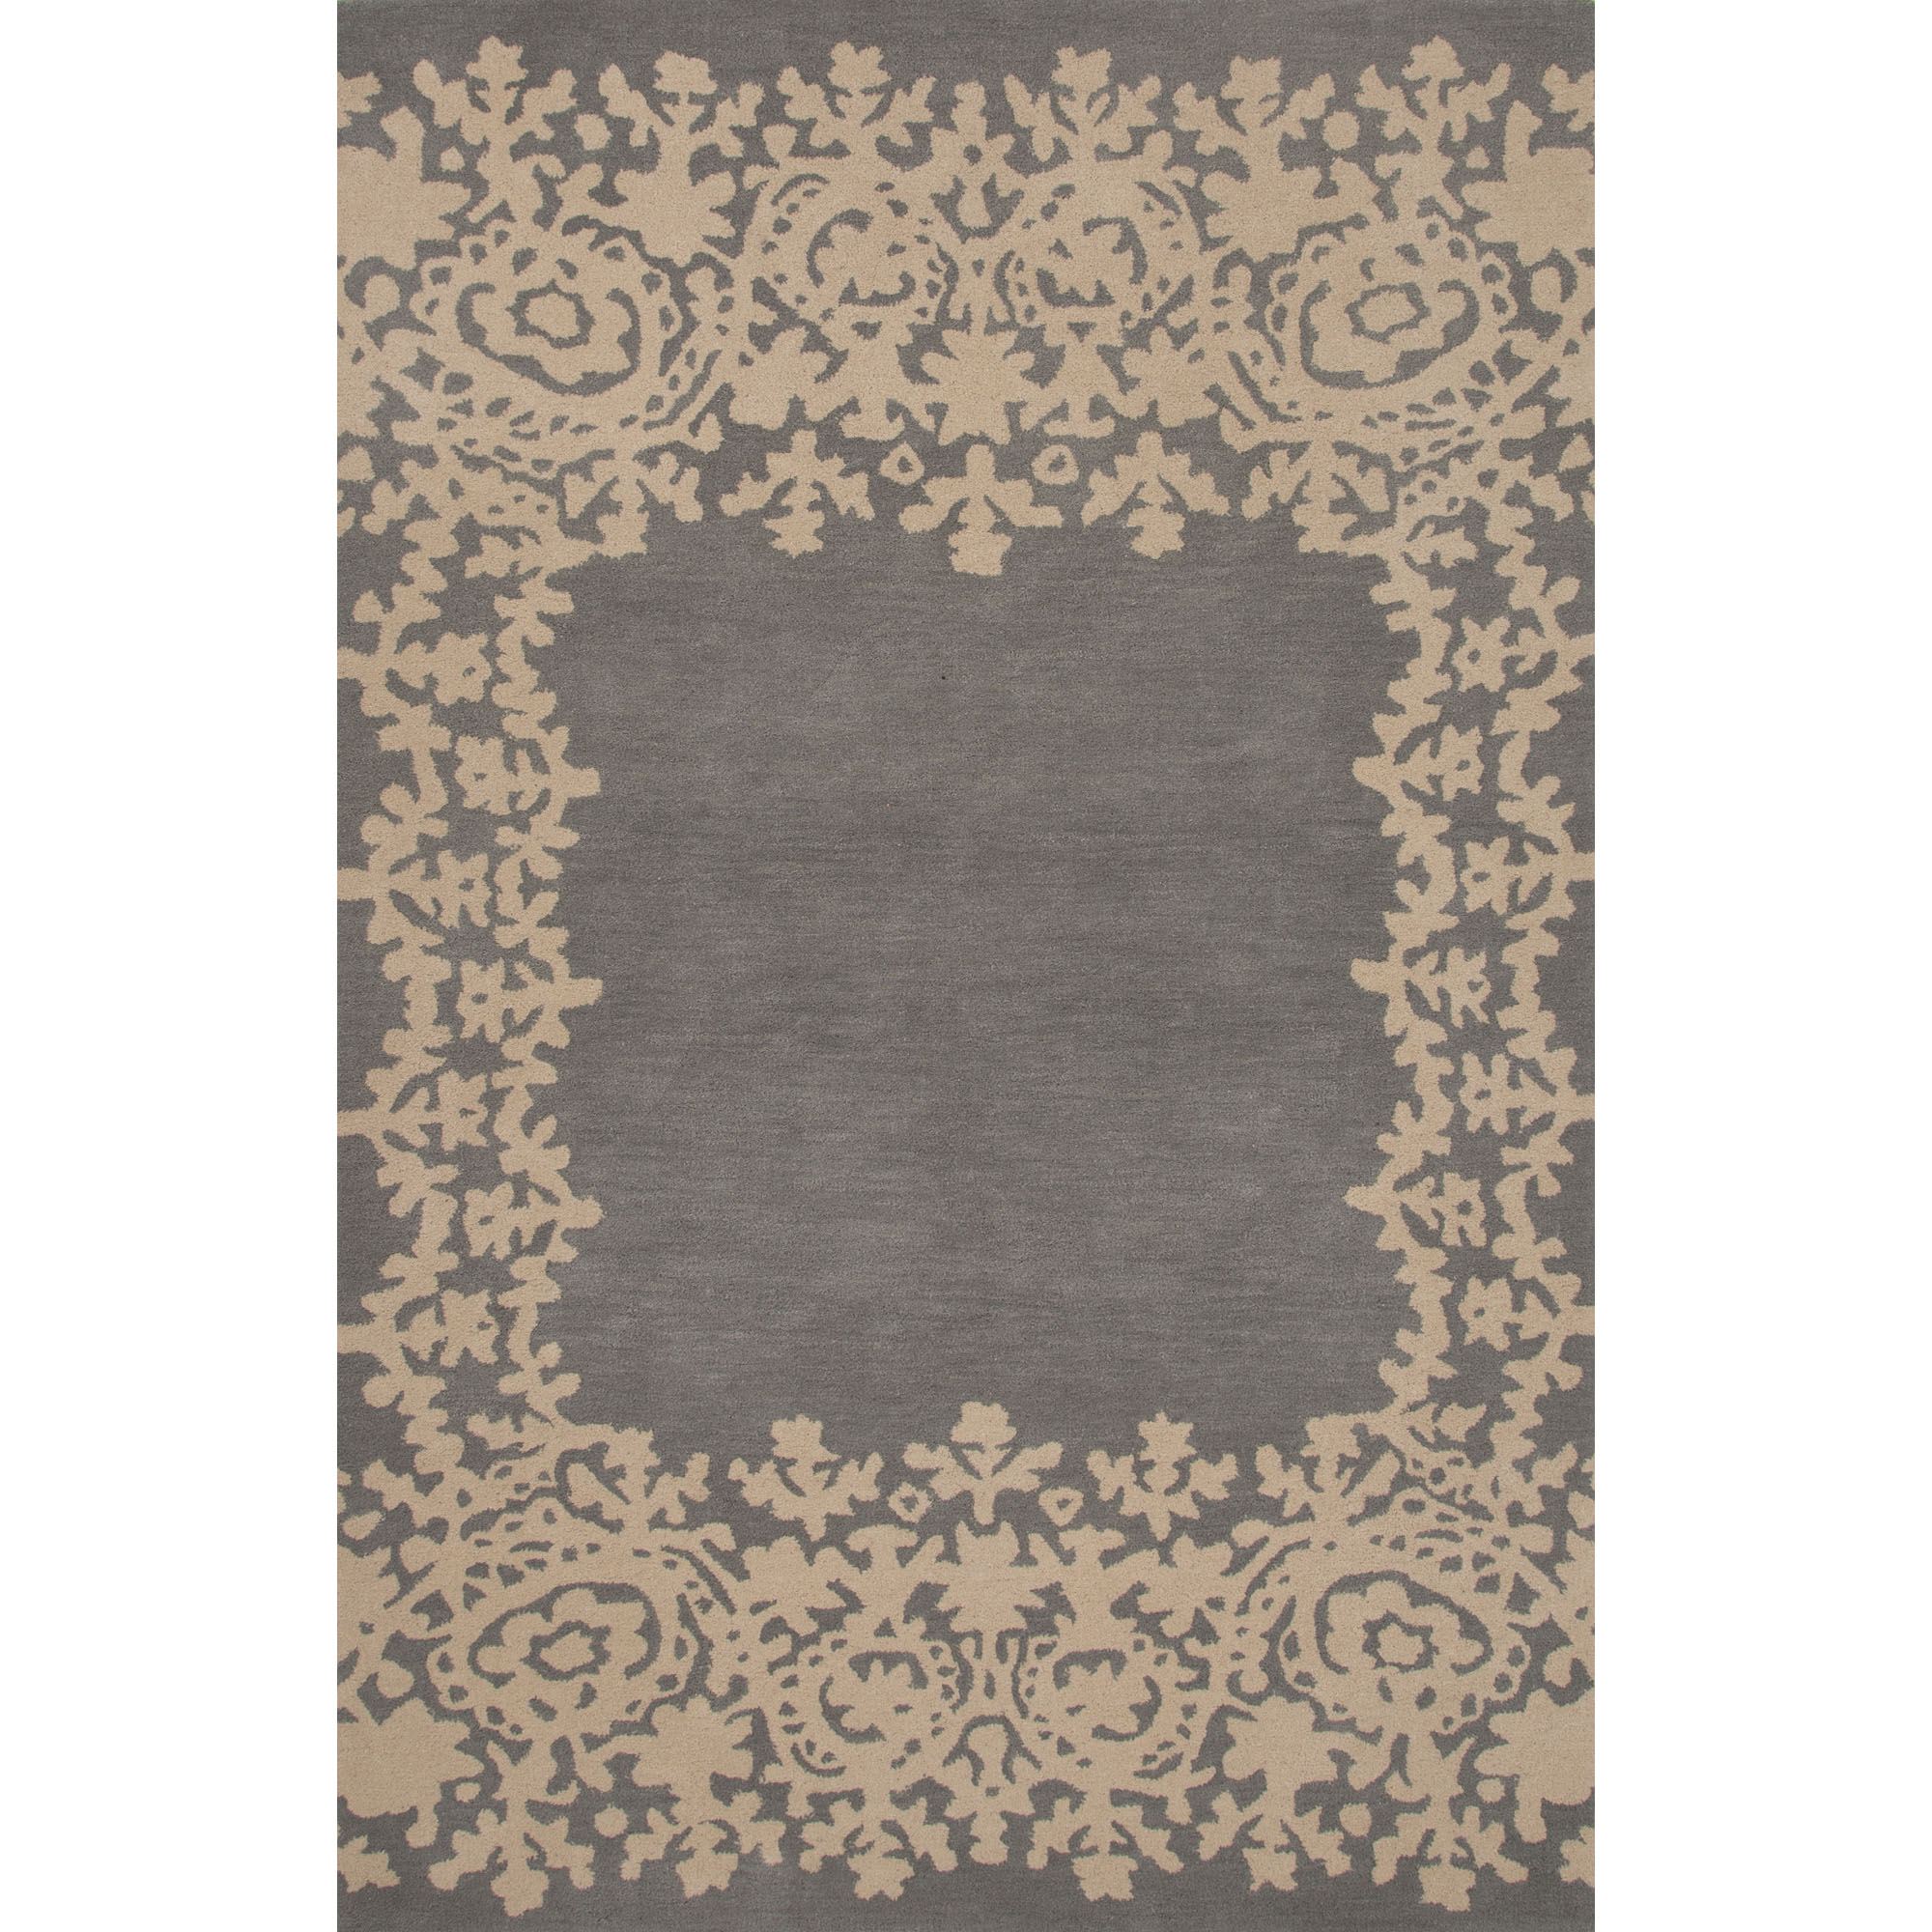 JAIPUR Rugs Traditions Made Modern Tufted 2 x 3 Rug - Item Number: RUG122204